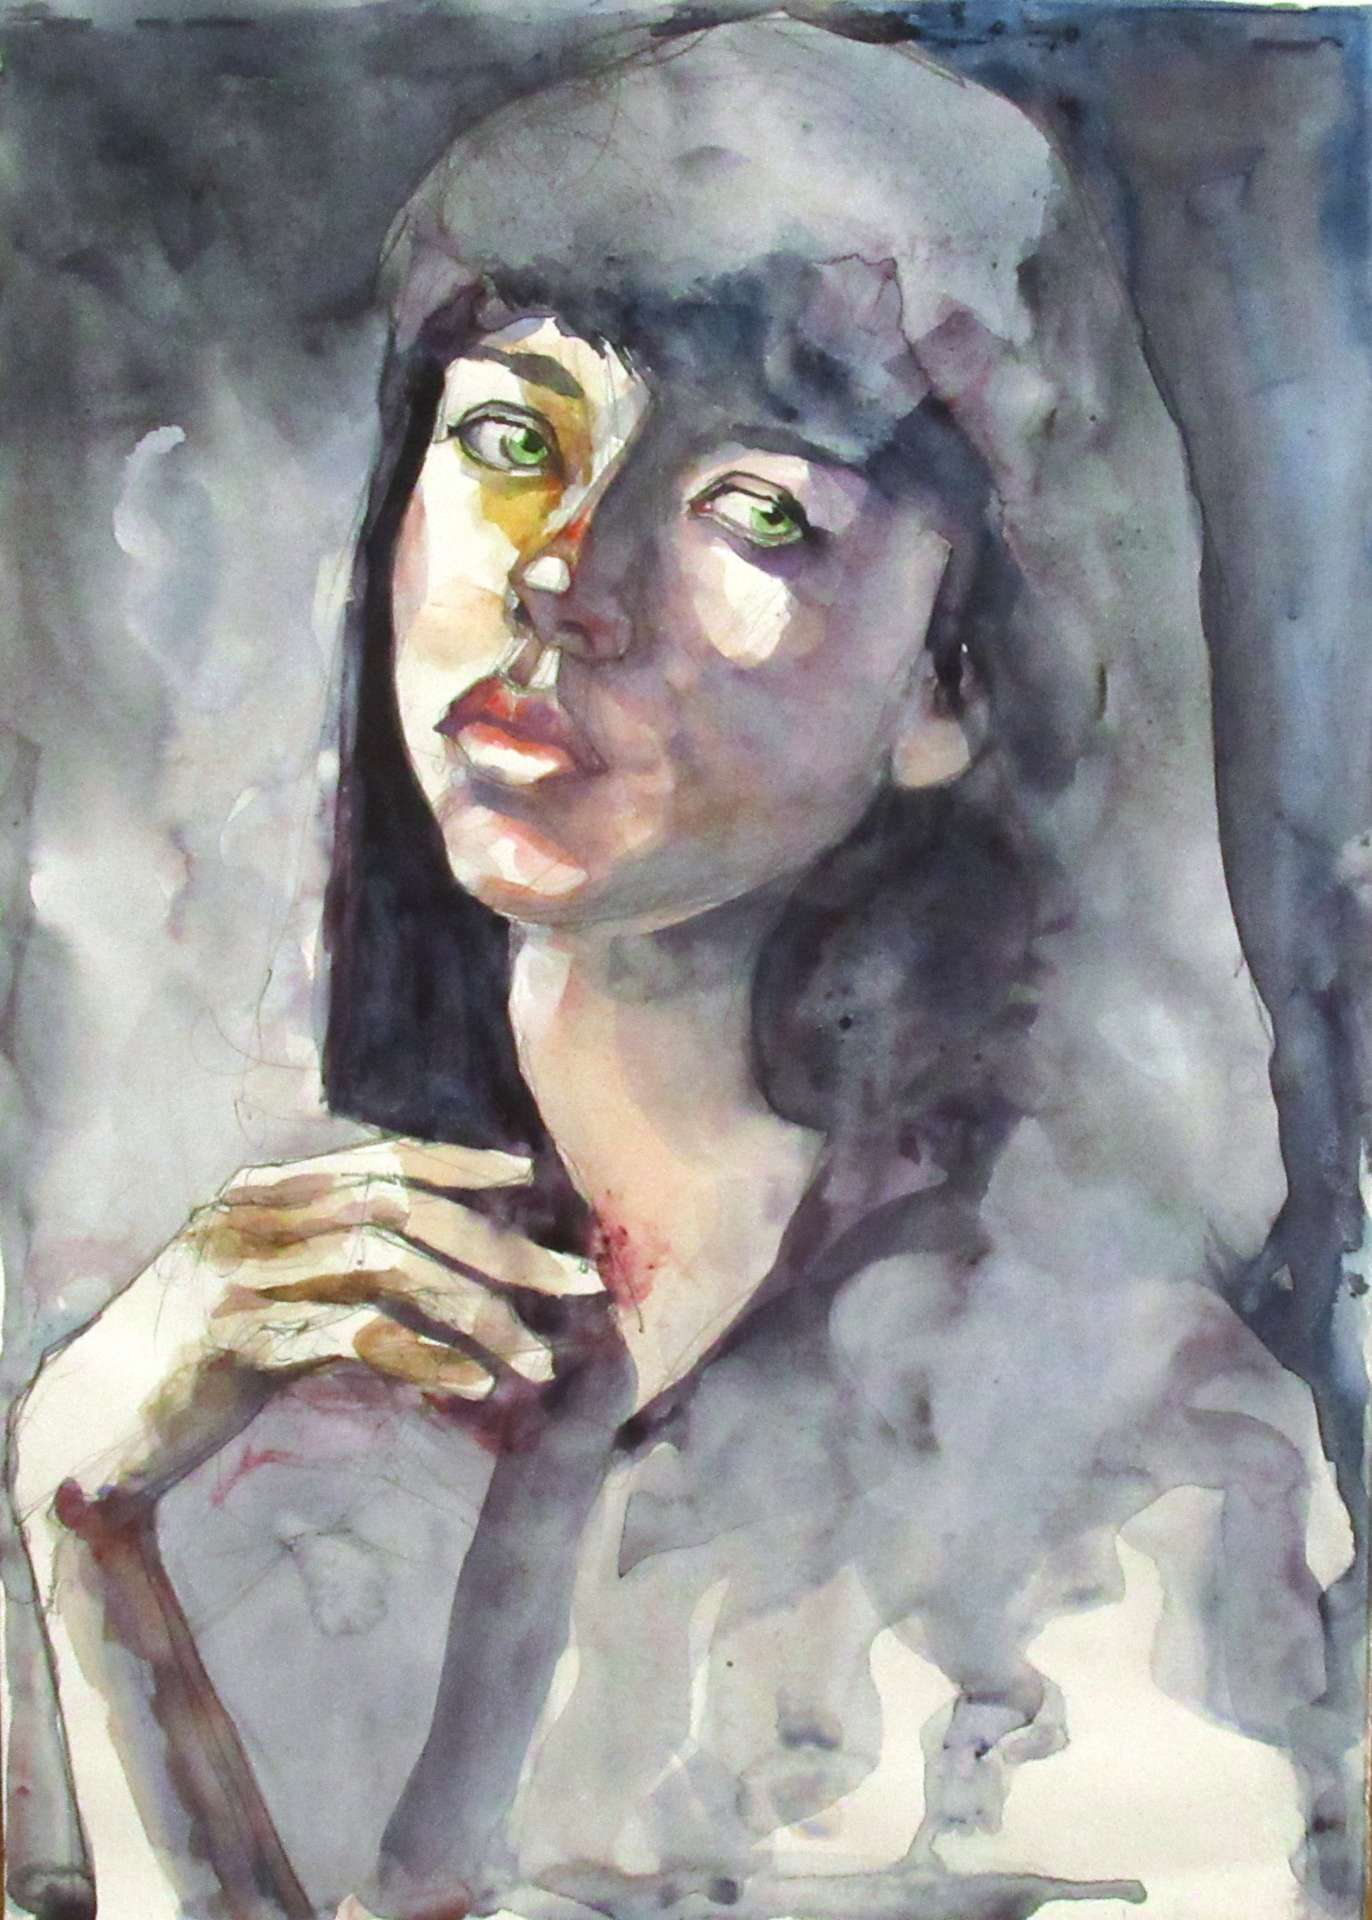 Portrait#6 - Reproduction. A watercolour portrait of a young woman with dark hair and green eyes.